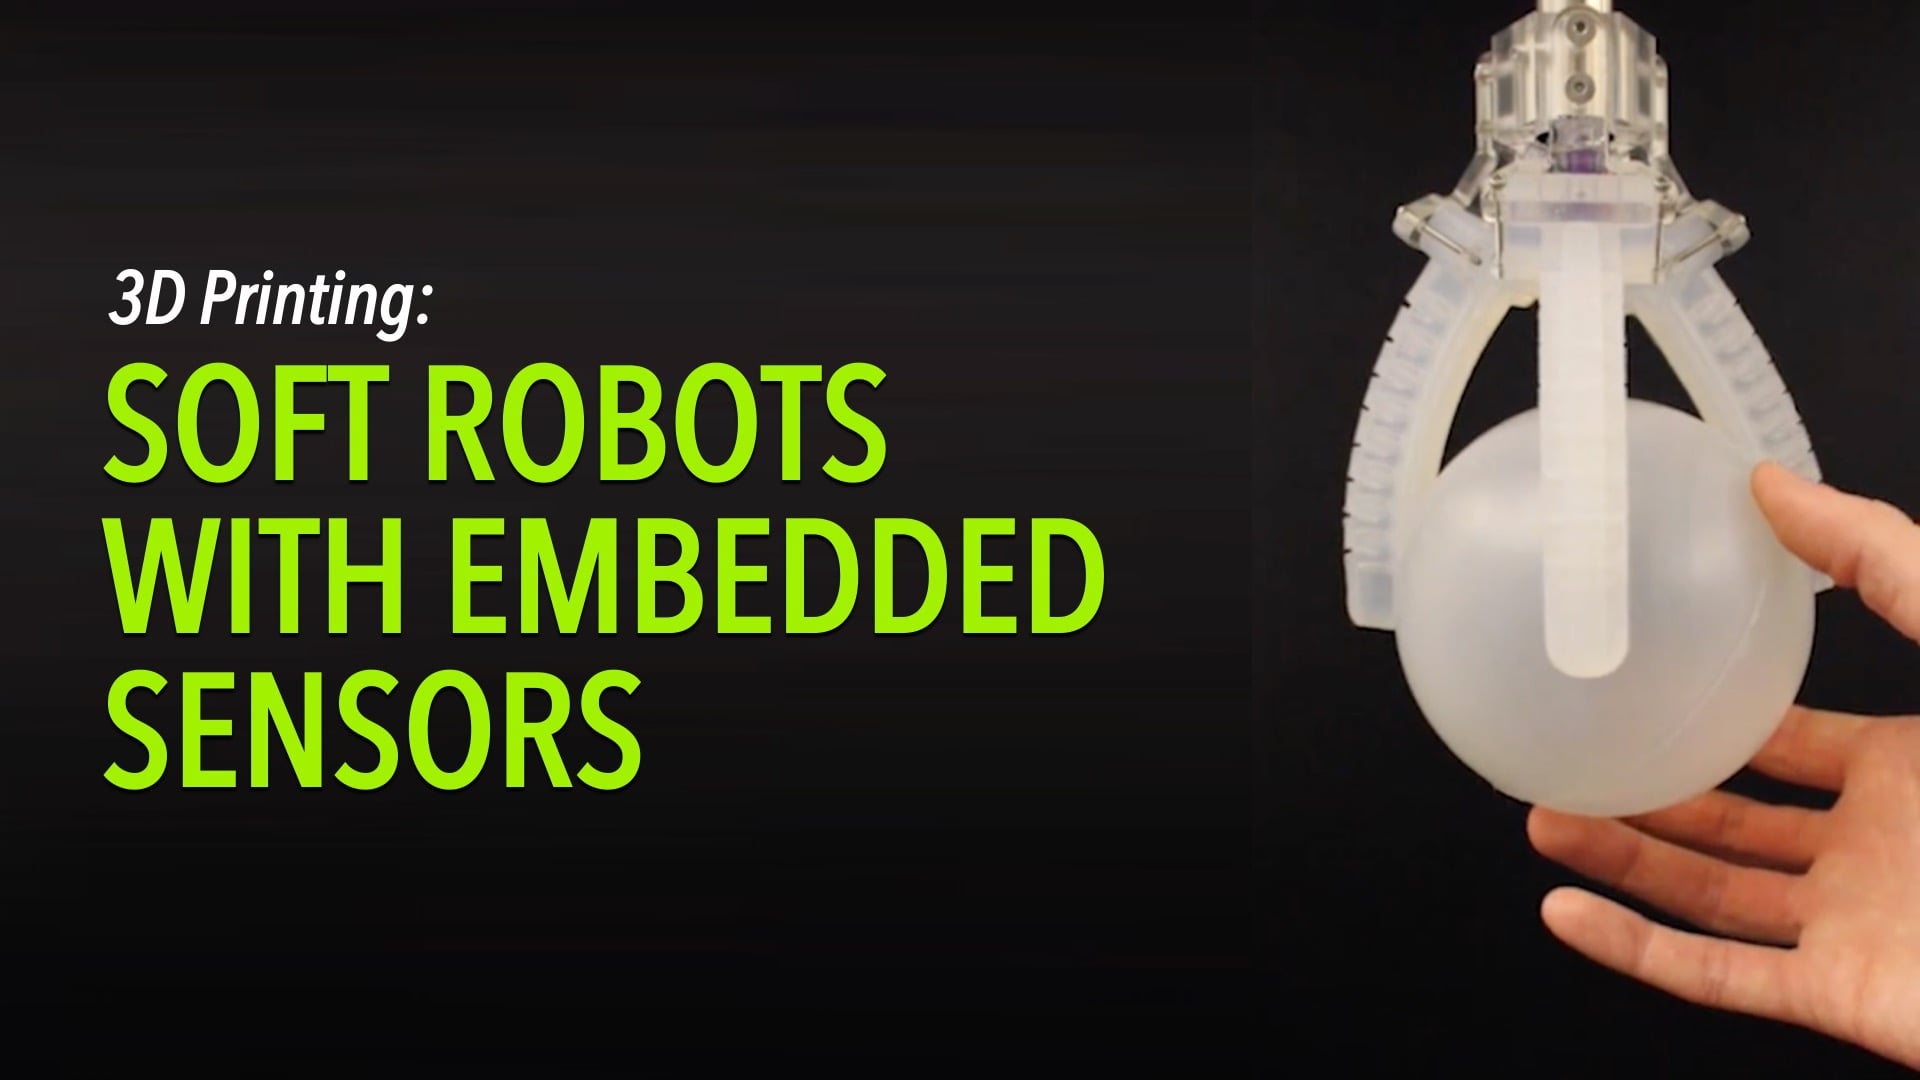 3D Printing: Soft Robots with Embedded Sensors